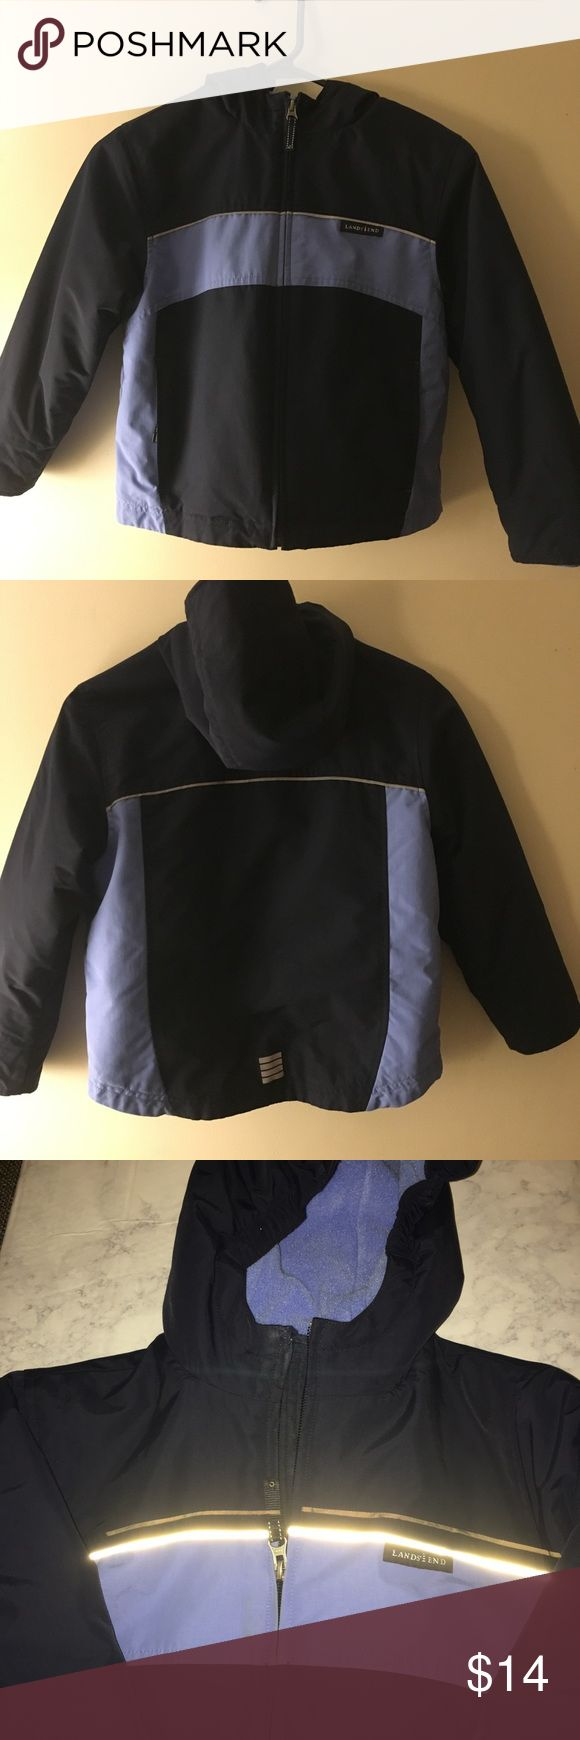 Boys winter coat size 6x-7 Lands End boys winter coat. Size 6x-7. Good condition. No holes or rips. The color is navy and a lighter blue. Nice coat. lands end Jackets & Coats